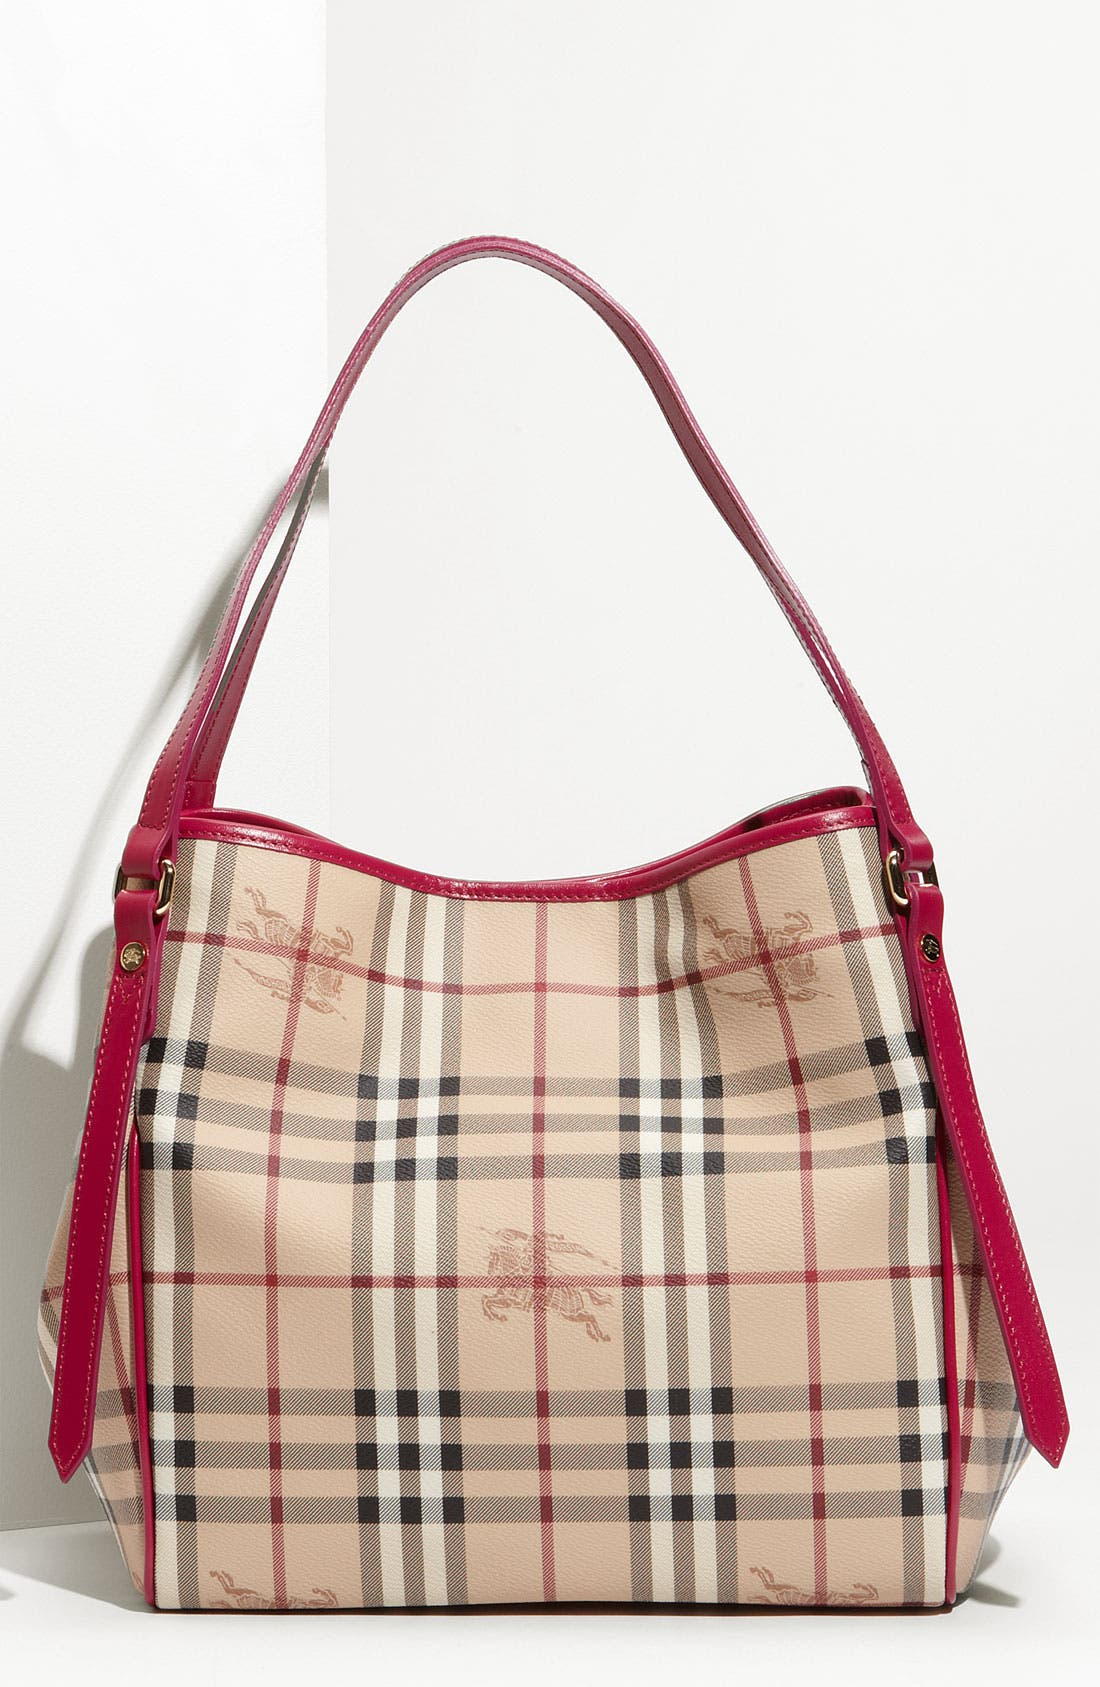 Alternate Image 1 Selected - Burberry 'Haymarket Check' Tote